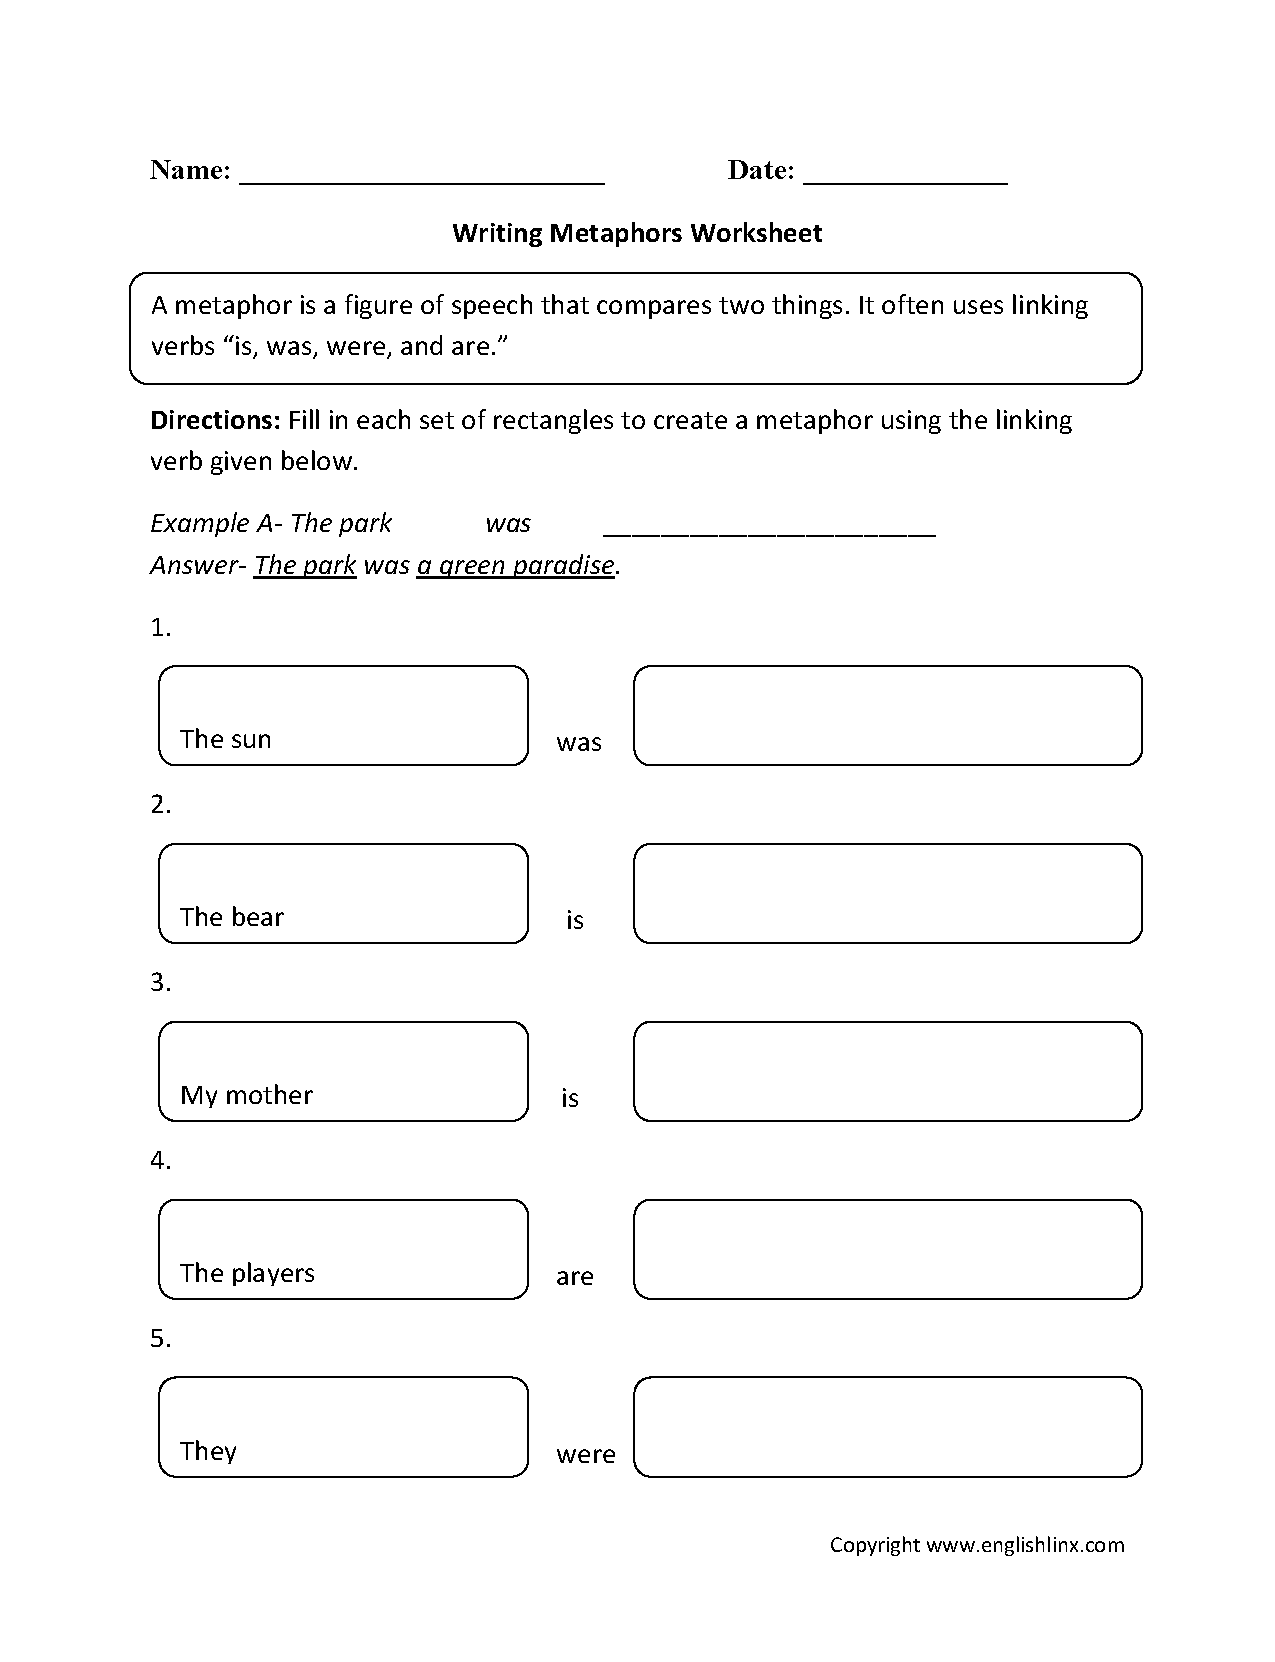 Aldiablosus  Gorgeous Englishlinxcom  Metaphors Worksheets With Engaging Worksheet With Beauteous Greater Than Less Than Alligator Worksheets Also Estimation Worksheets Th Grade In Addition Number Patterns Worksheets Rd Grade And Stoichiometry Grams To Grams Worksheet As Well As Weekly Budget Worksheets Additionally Spending Worksheet From Englishlinxcom With Aldiablosus  Engaging Englishlinxcom  Metaphors Worksheets With Beauteous Worksheet And Gorgeous Greater Than Less Than Alligator Worksheets Also Estimation Worksheets Th Grade In Addition Number Patterns Worksheets Rd Grade From Englishlinxcom